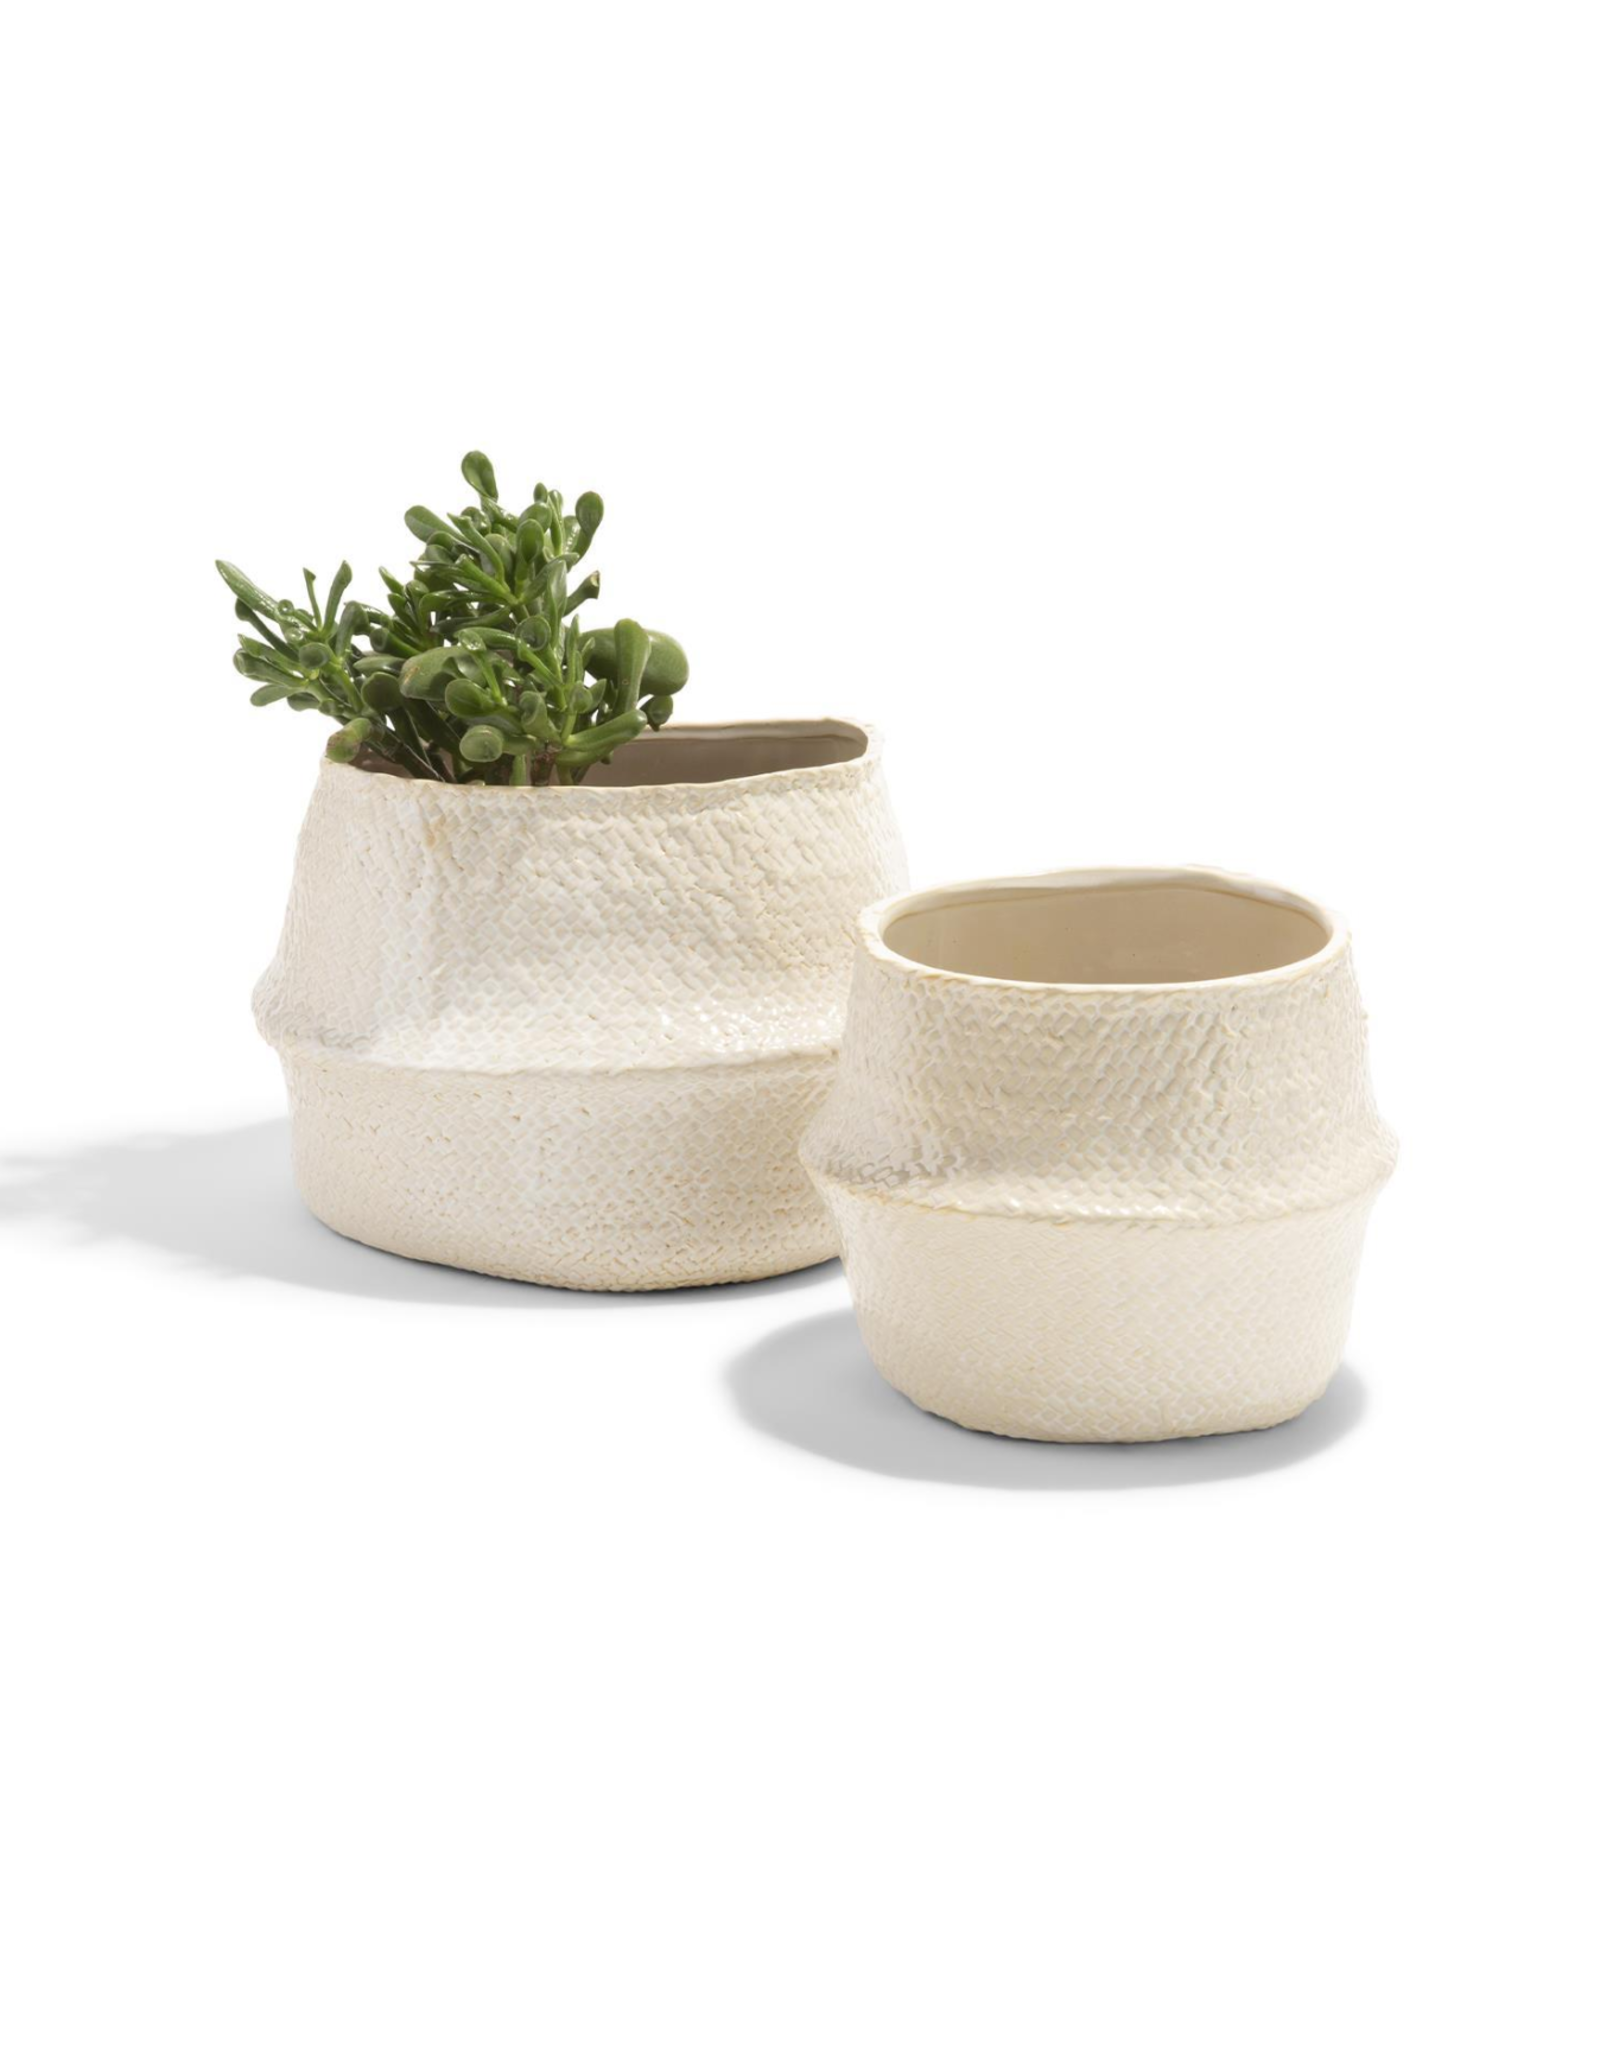 Small White Pot  with Weave Texture